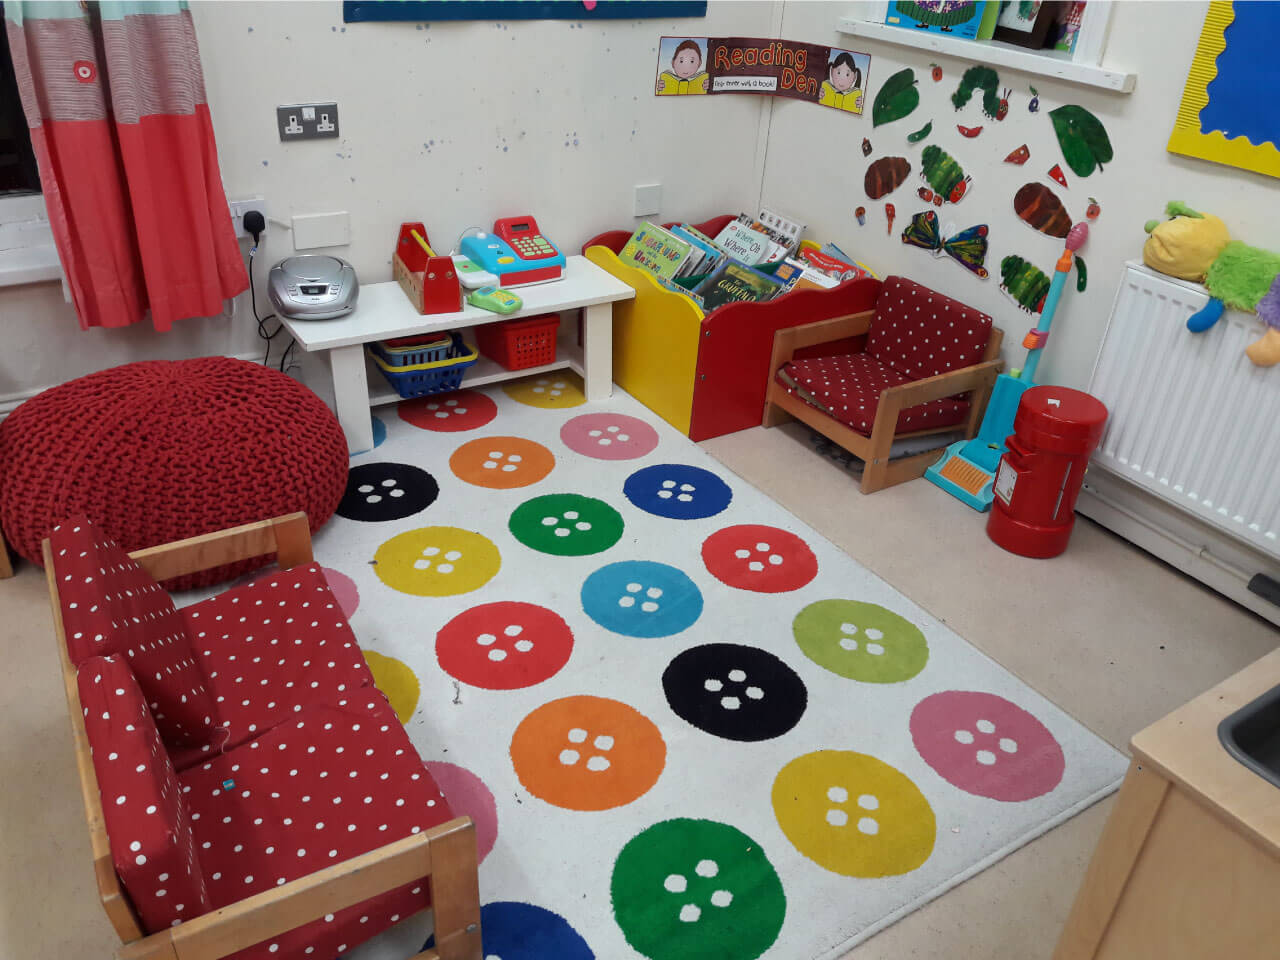 Reading den for preschool children to learn and improve their reading skills